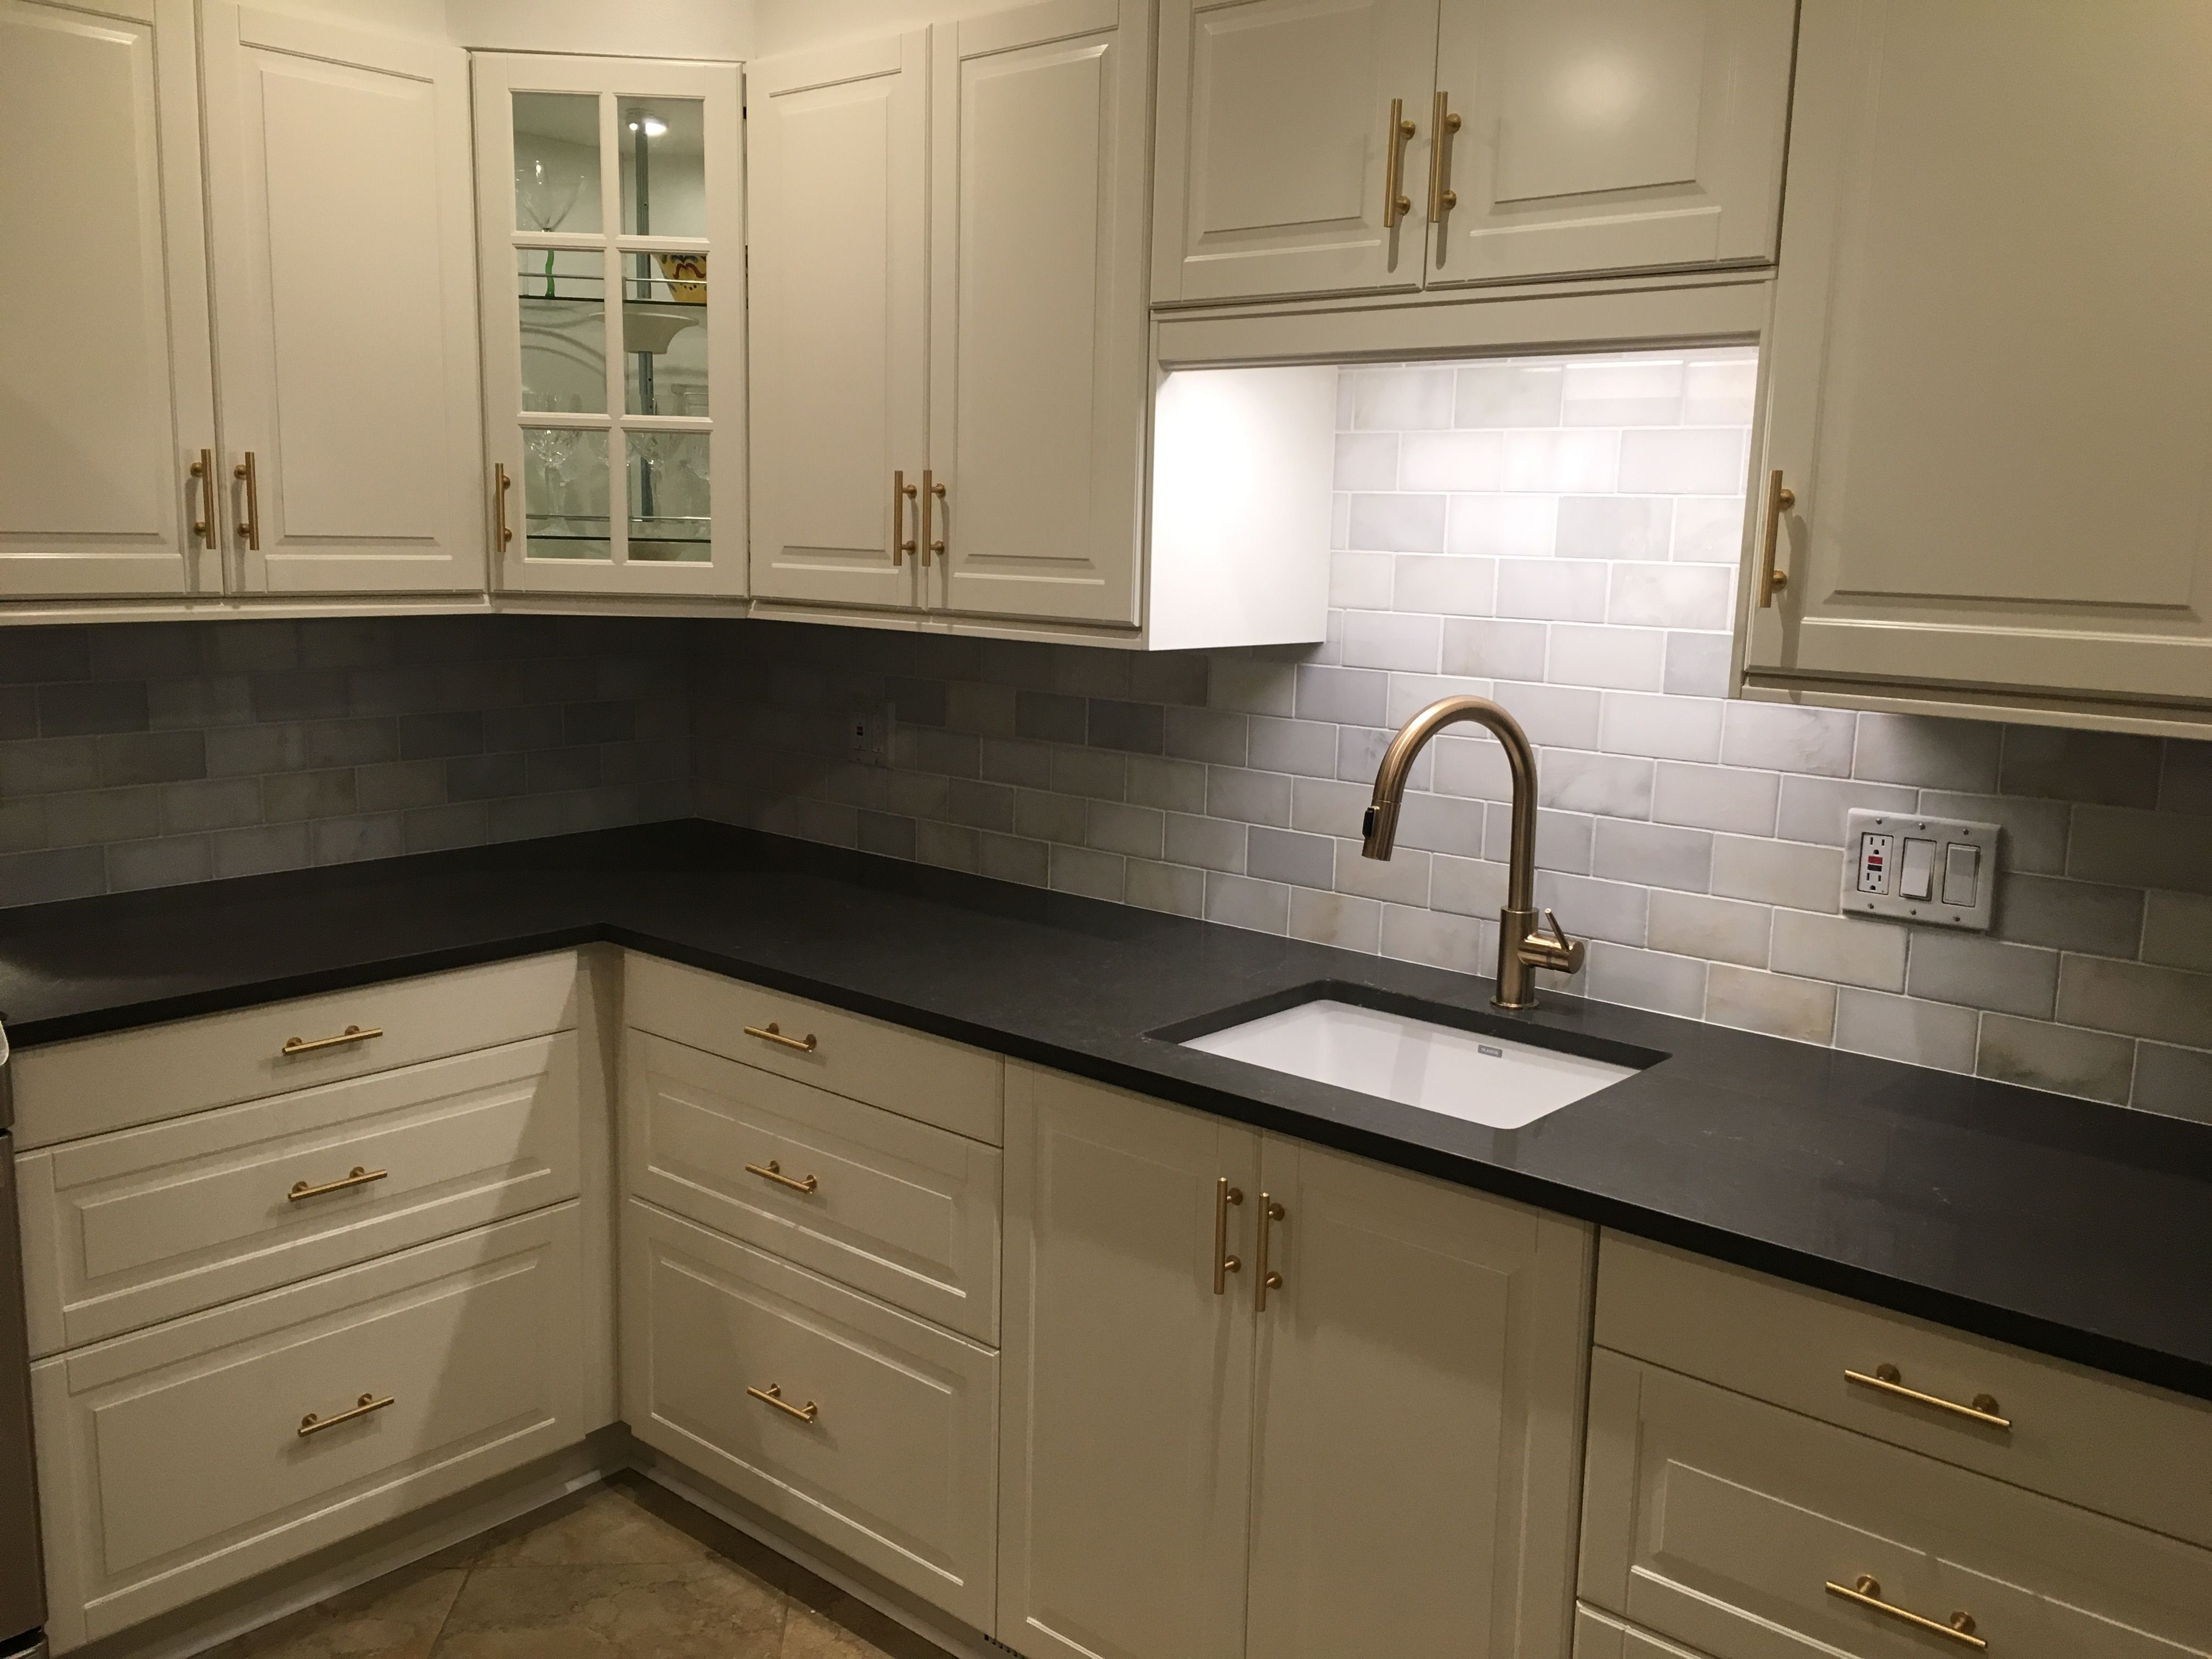 Ikea White Bodbyn With Piatra Gray Counter Marble Subway